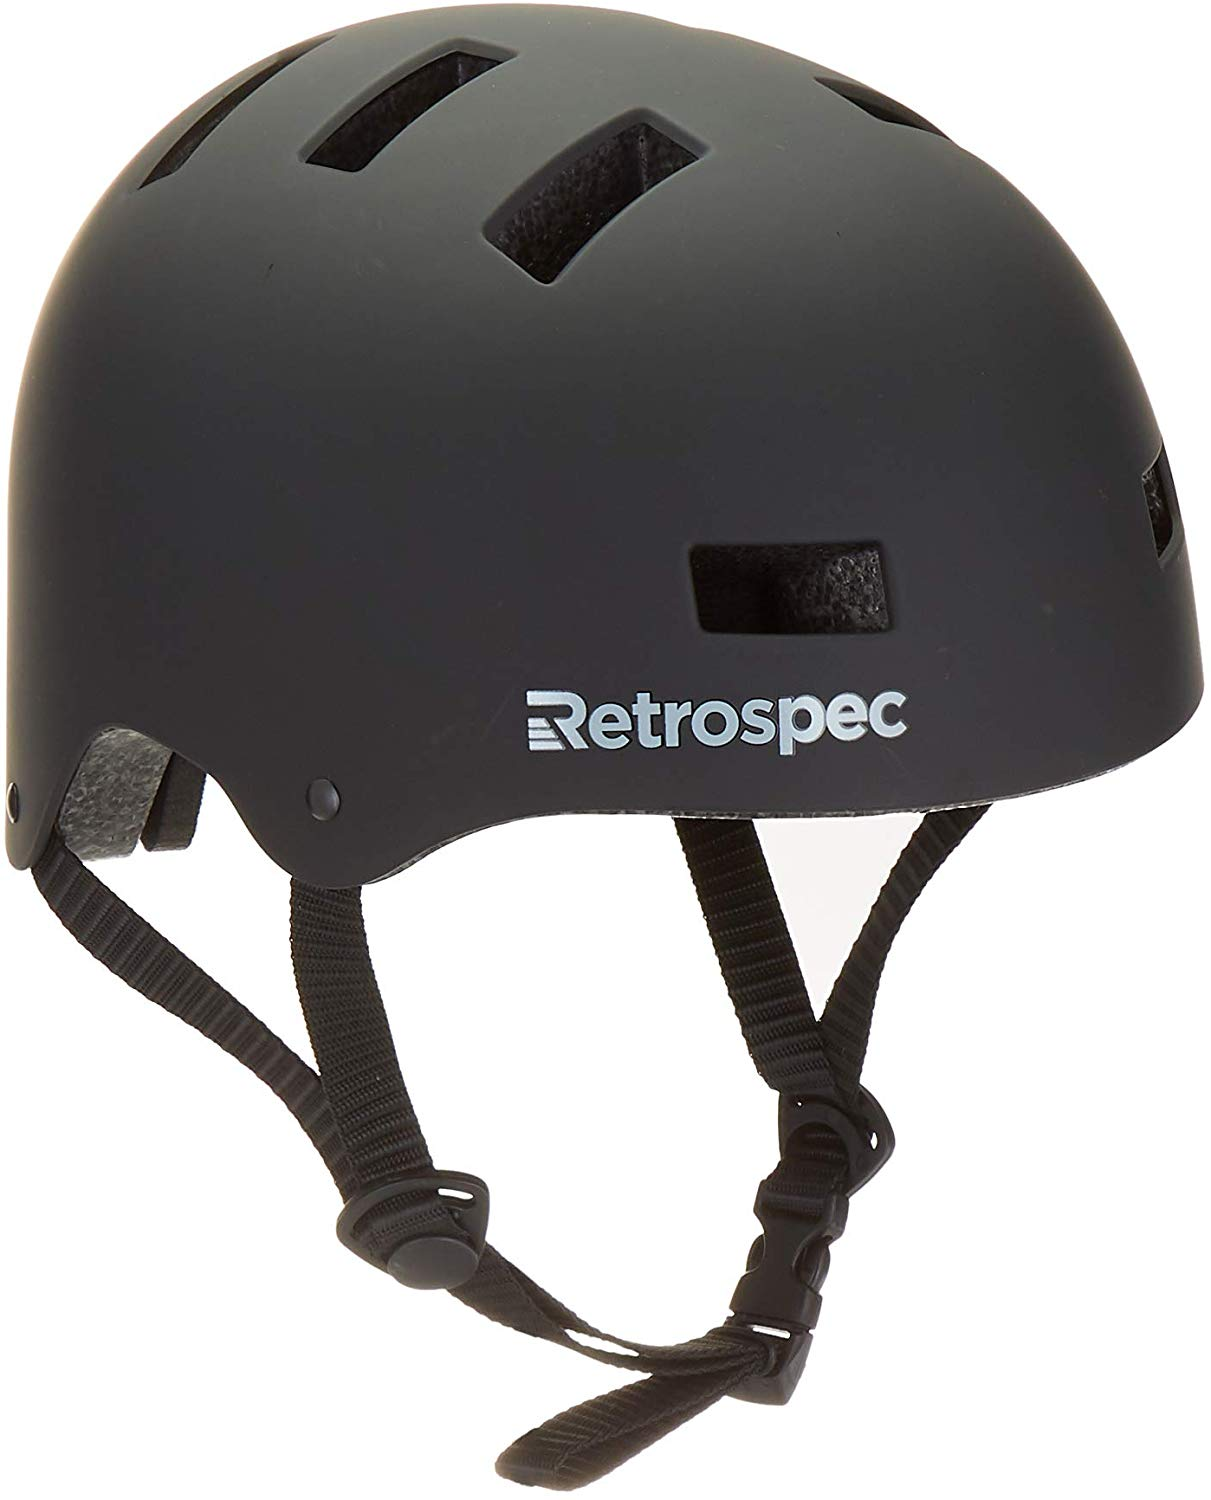 Retrospec Commuter Bike Helmet